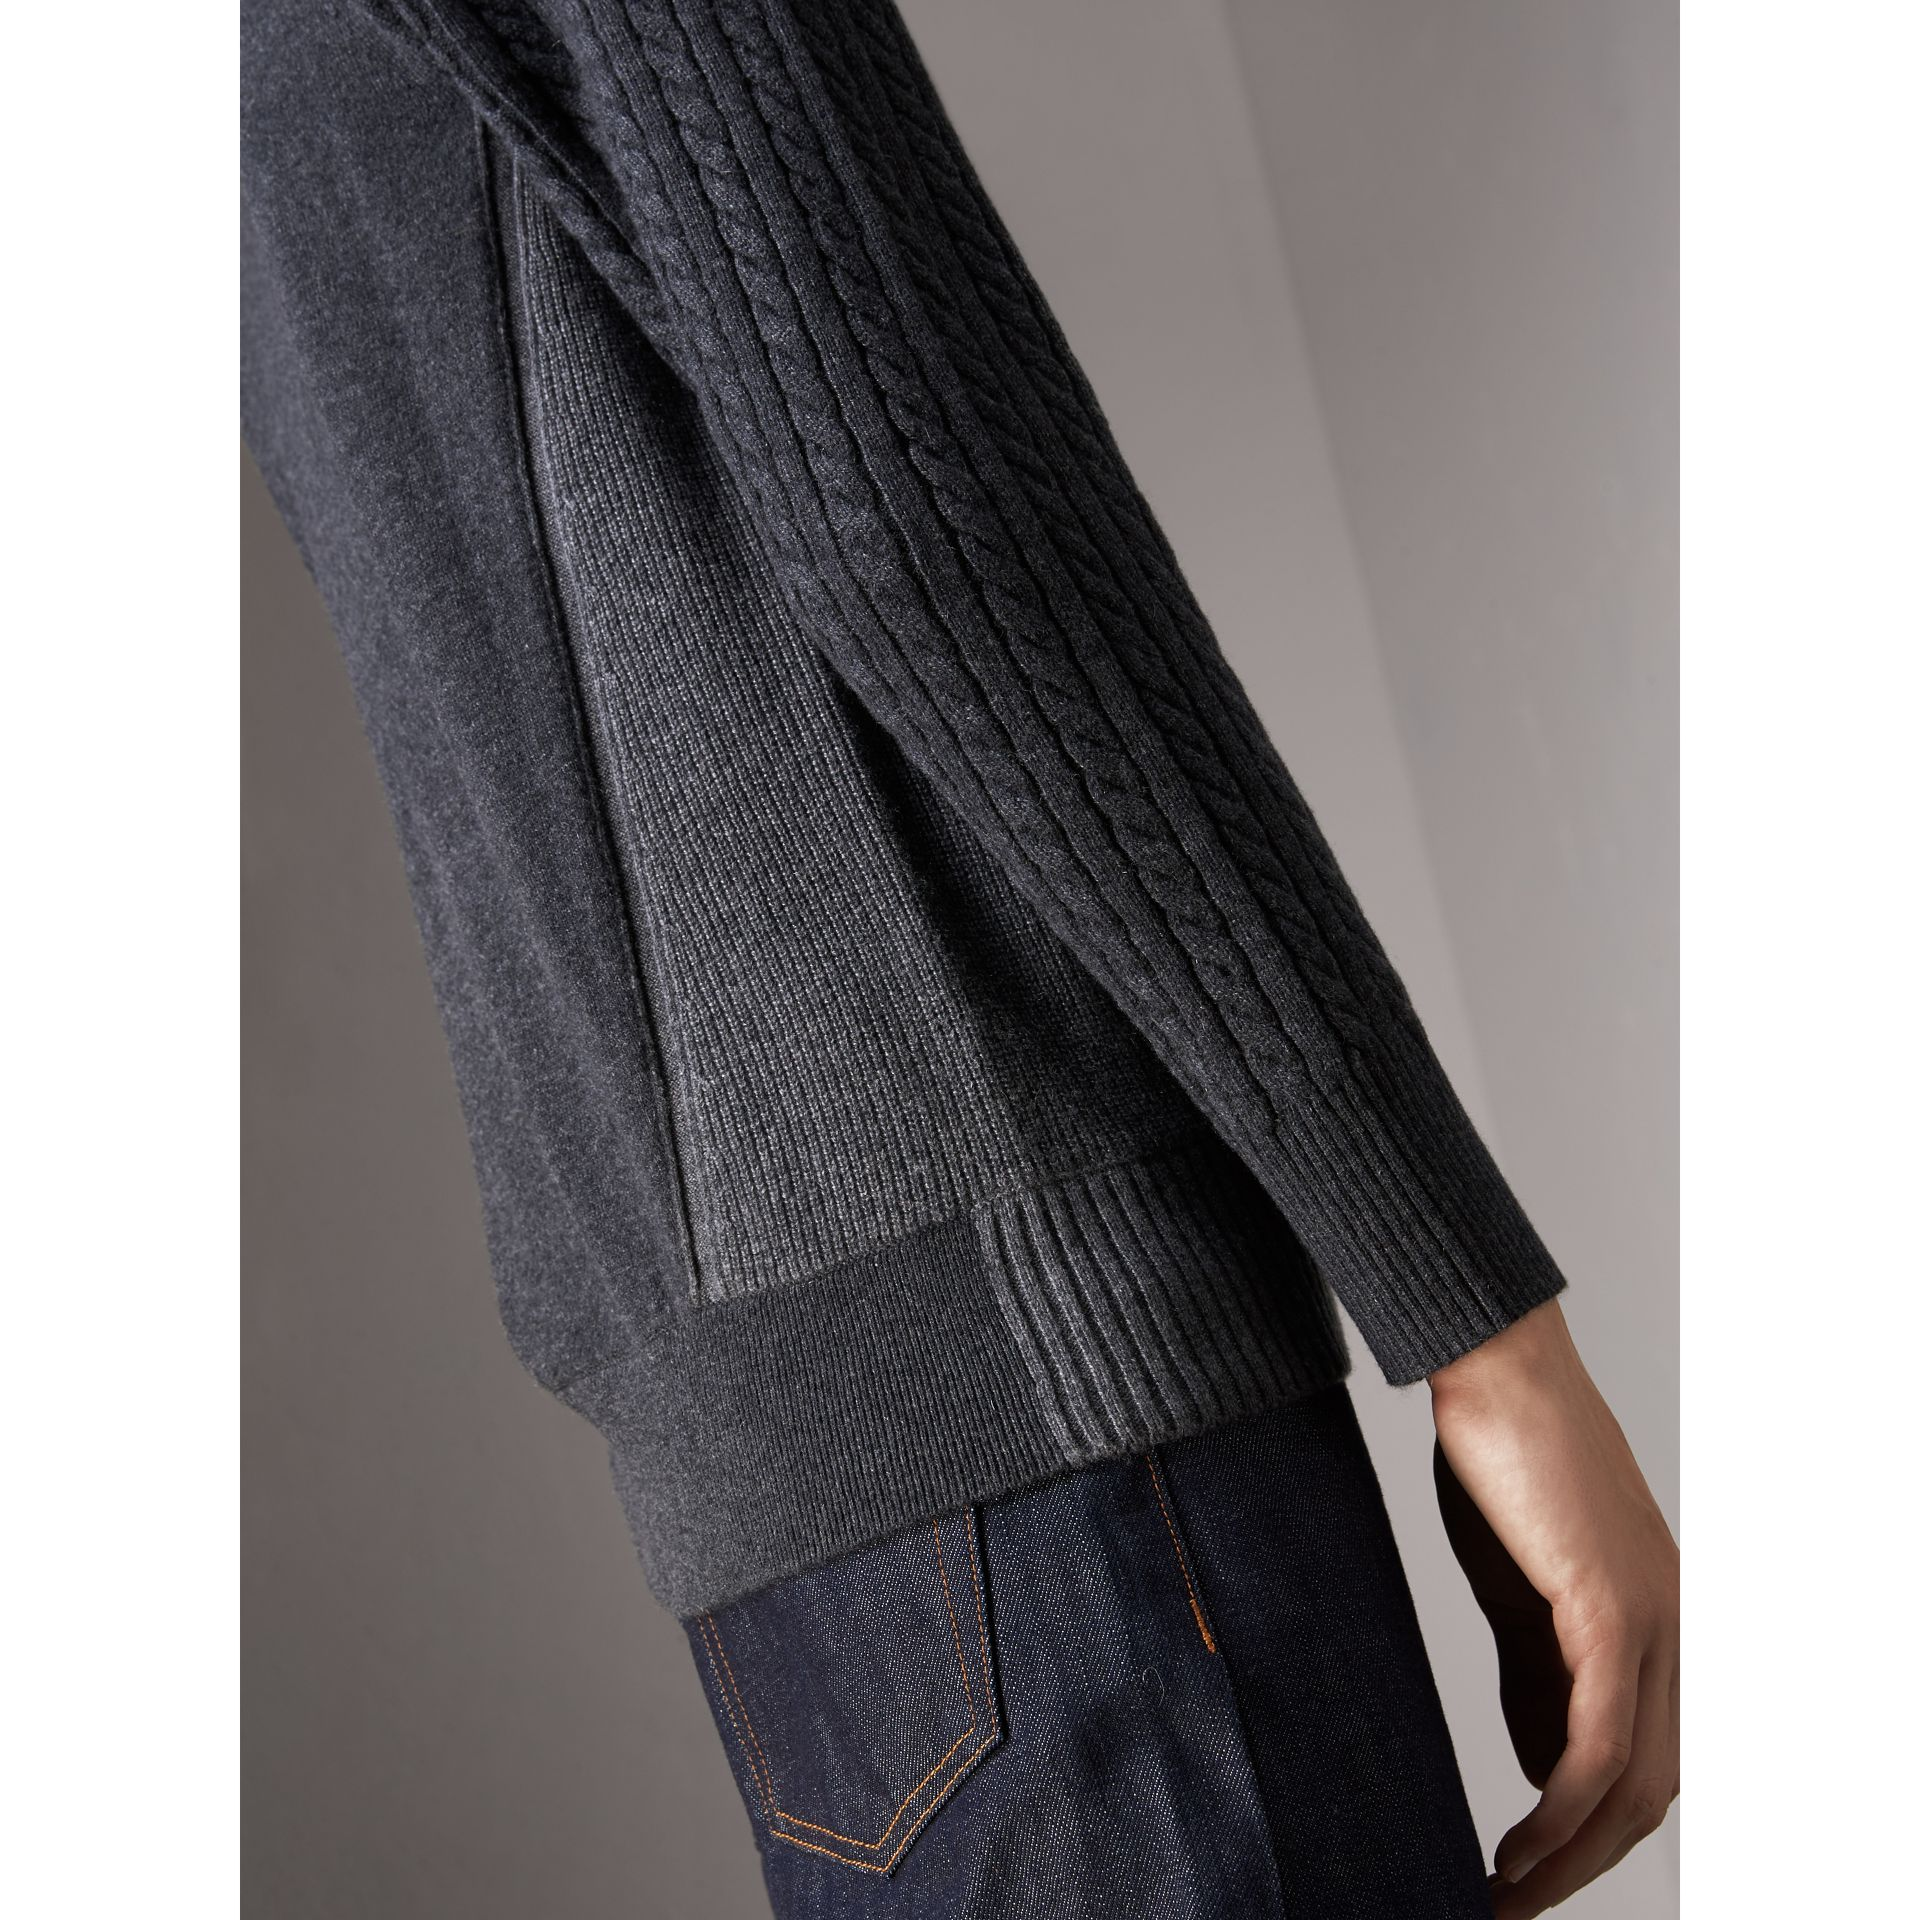 Two-tone Cable Knit Cashmere Sweater in Charcoal - Men | Burberry - gallery image 1